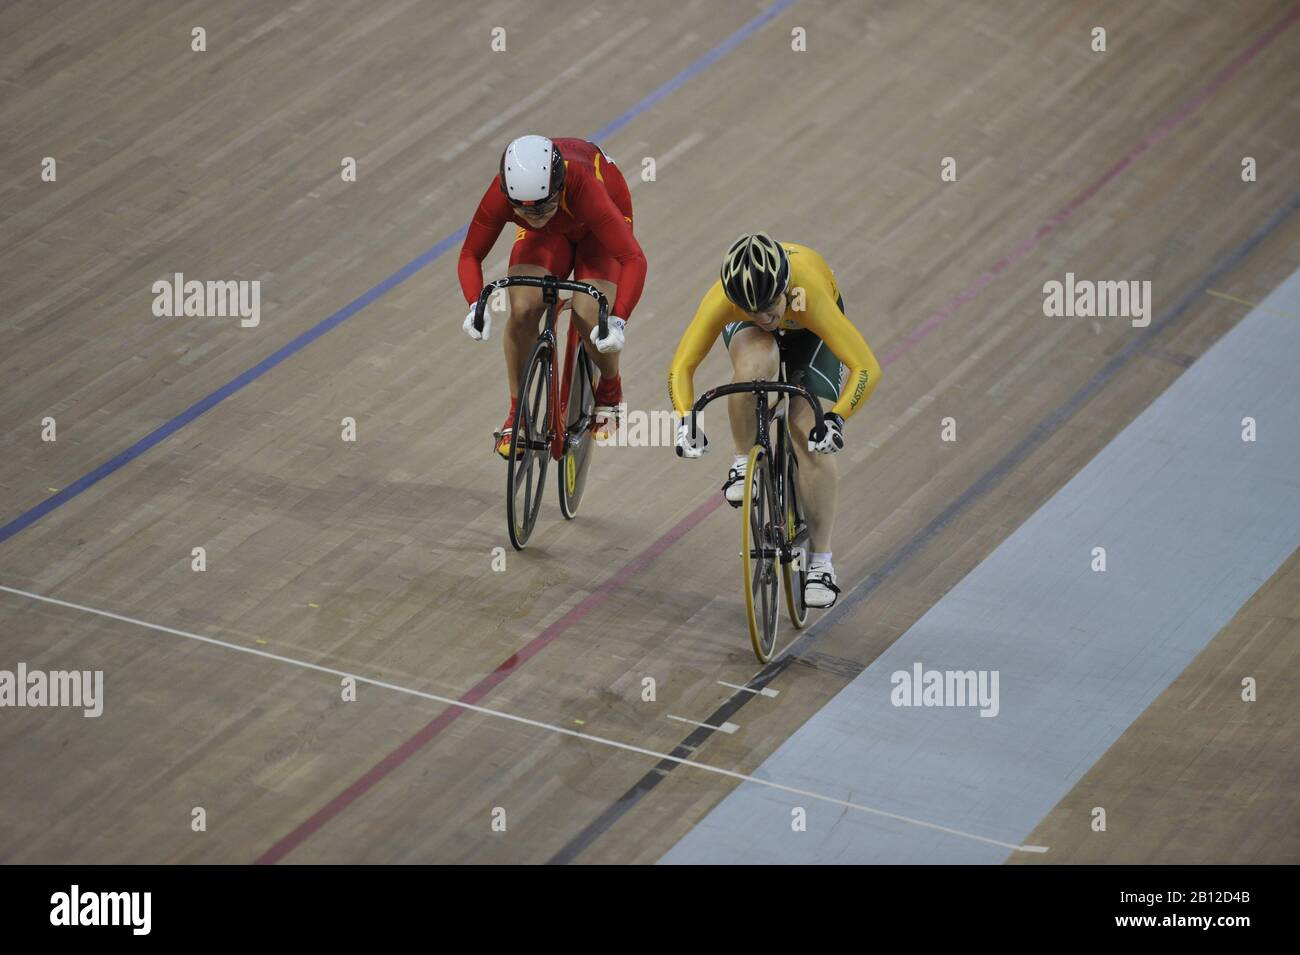 Beijing, CHINA.   Cycling,  [L] CHN, Shuang GUO and [R] AUS Anna MEARES,  Laosham Velodrome, Tuesday - 19/08/2008, [Mandatory Credit: Peter SPURRIER, Intersport Images] Stock Photo